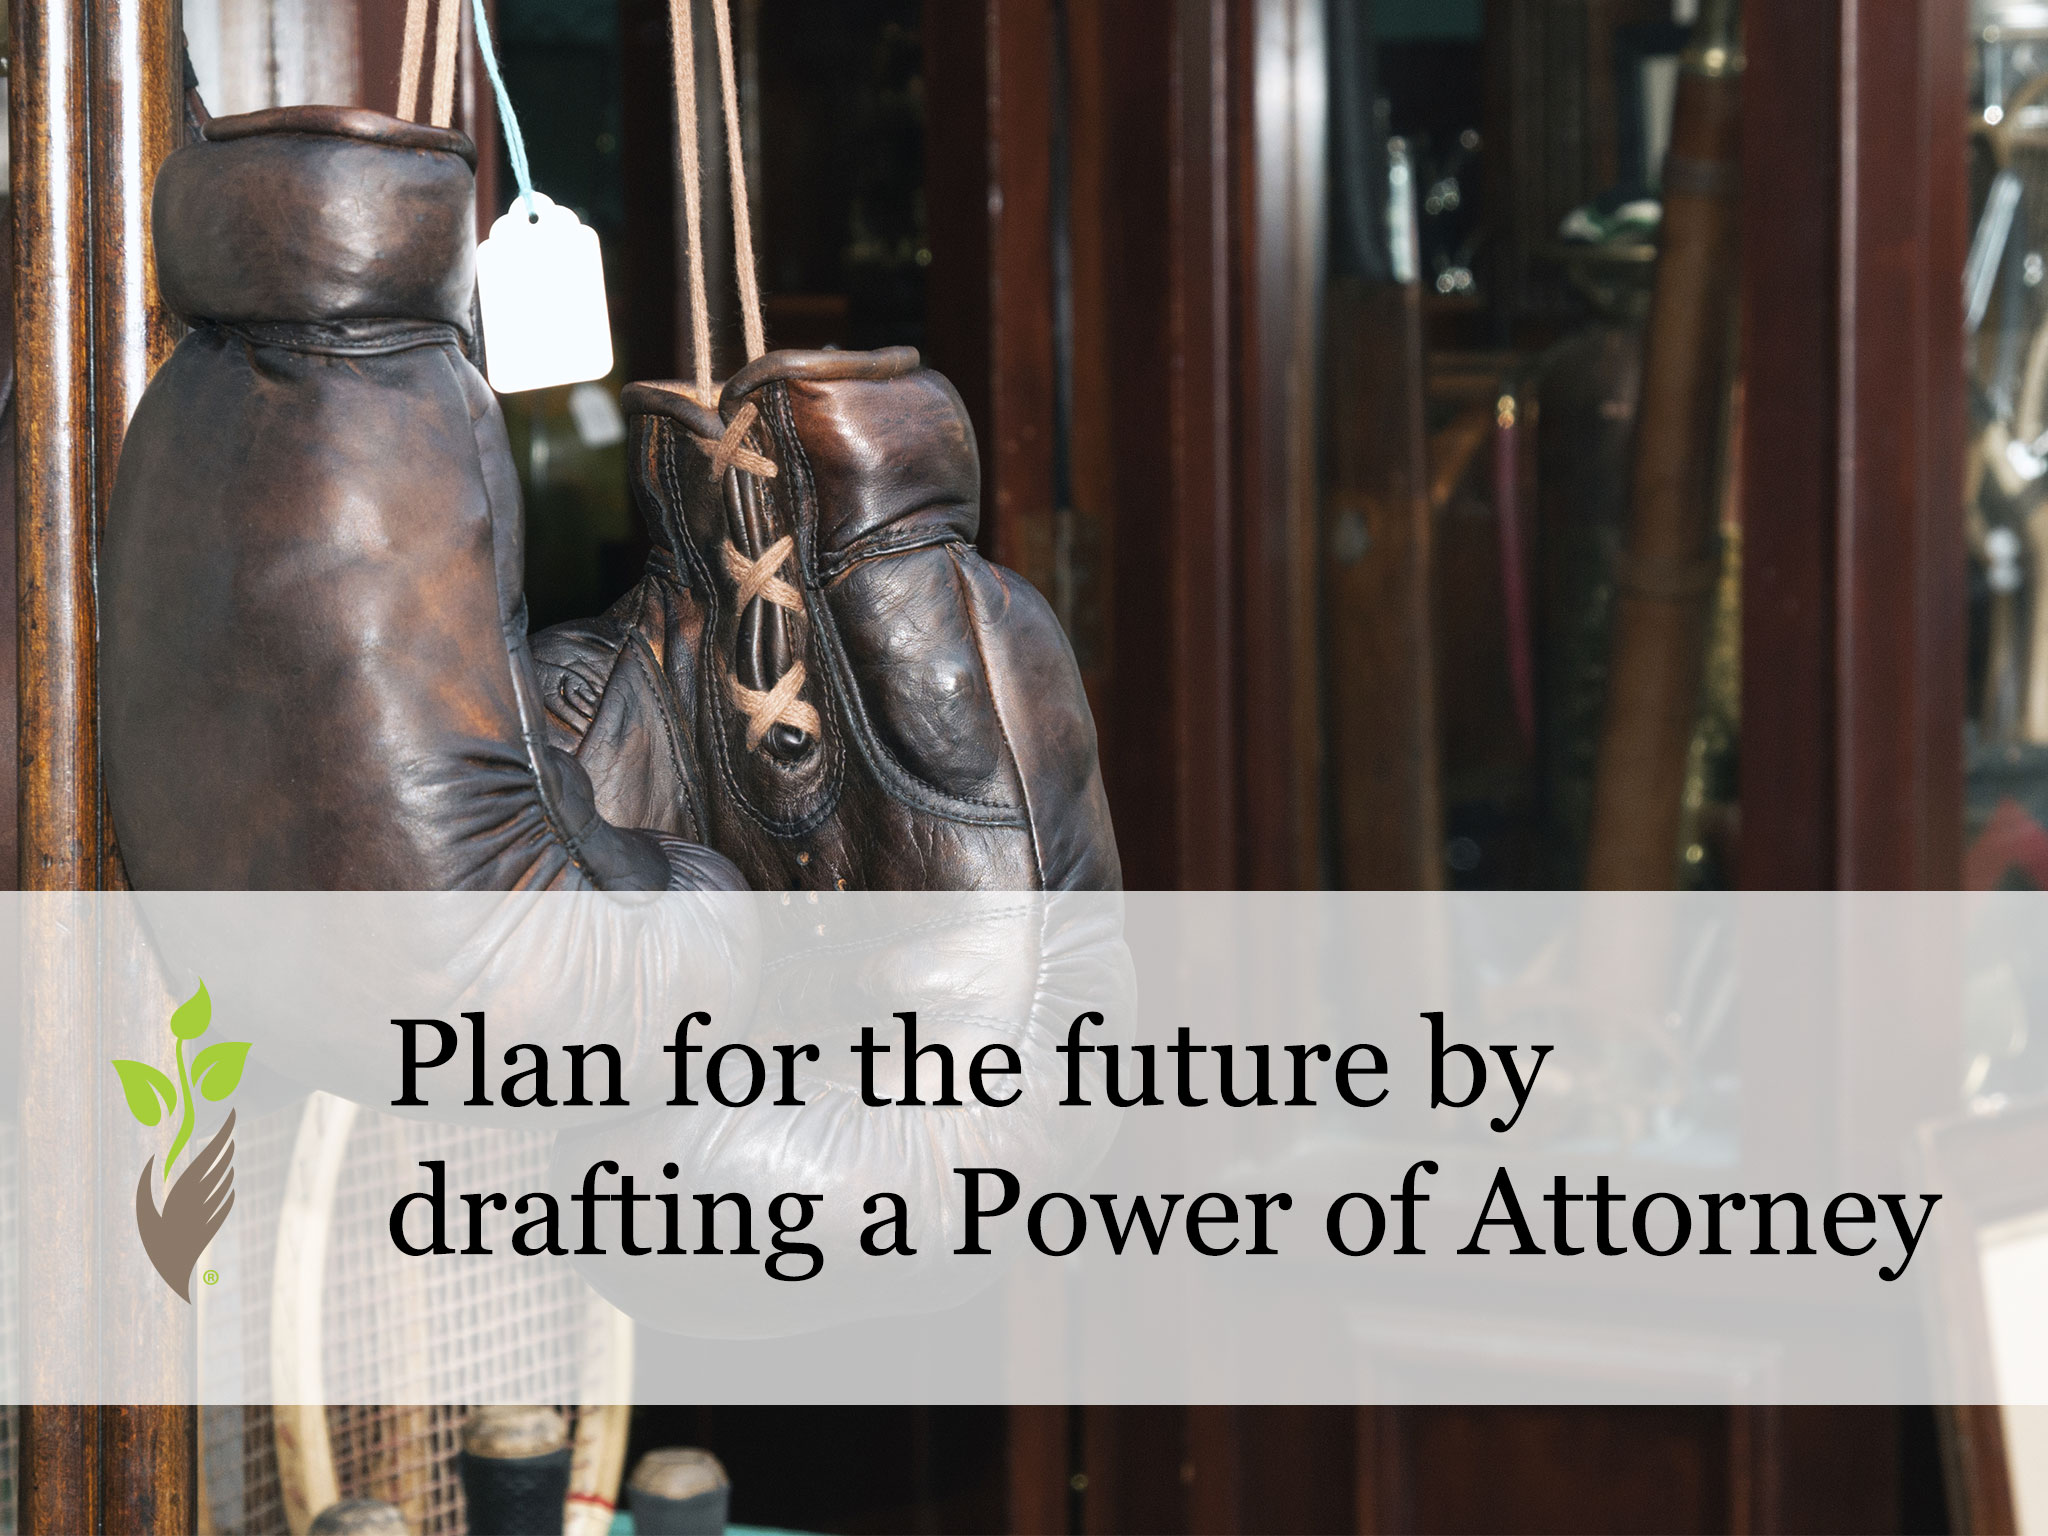 Plan for the future by drafting a Power of Attorney